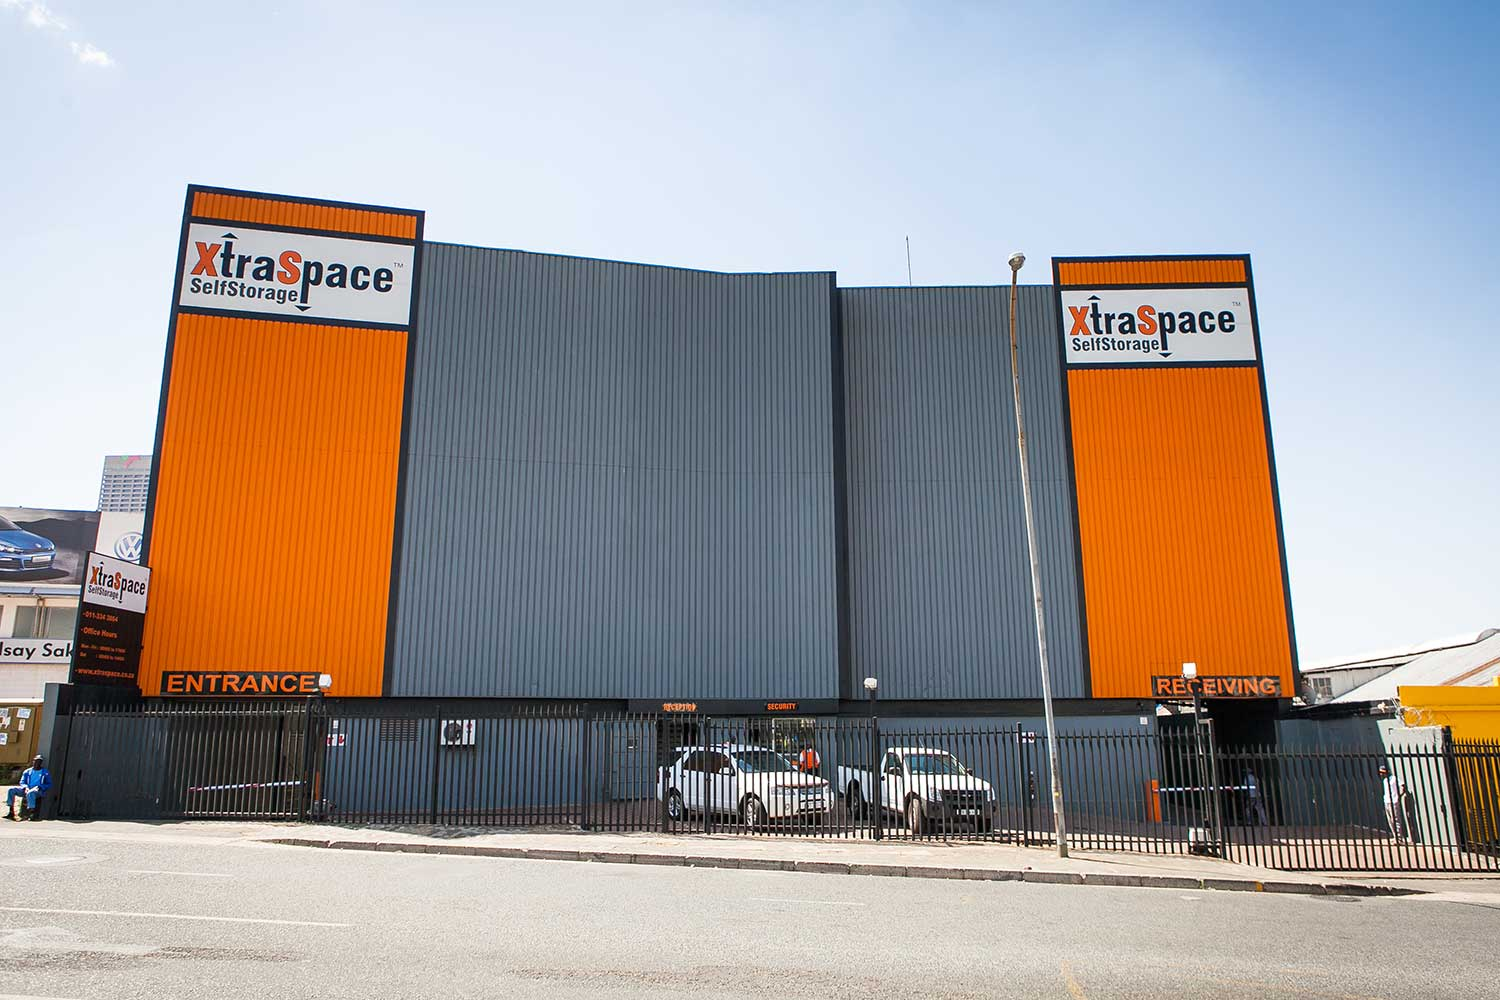 Street view of the XtraSpace Johannesburg Central self storage facility